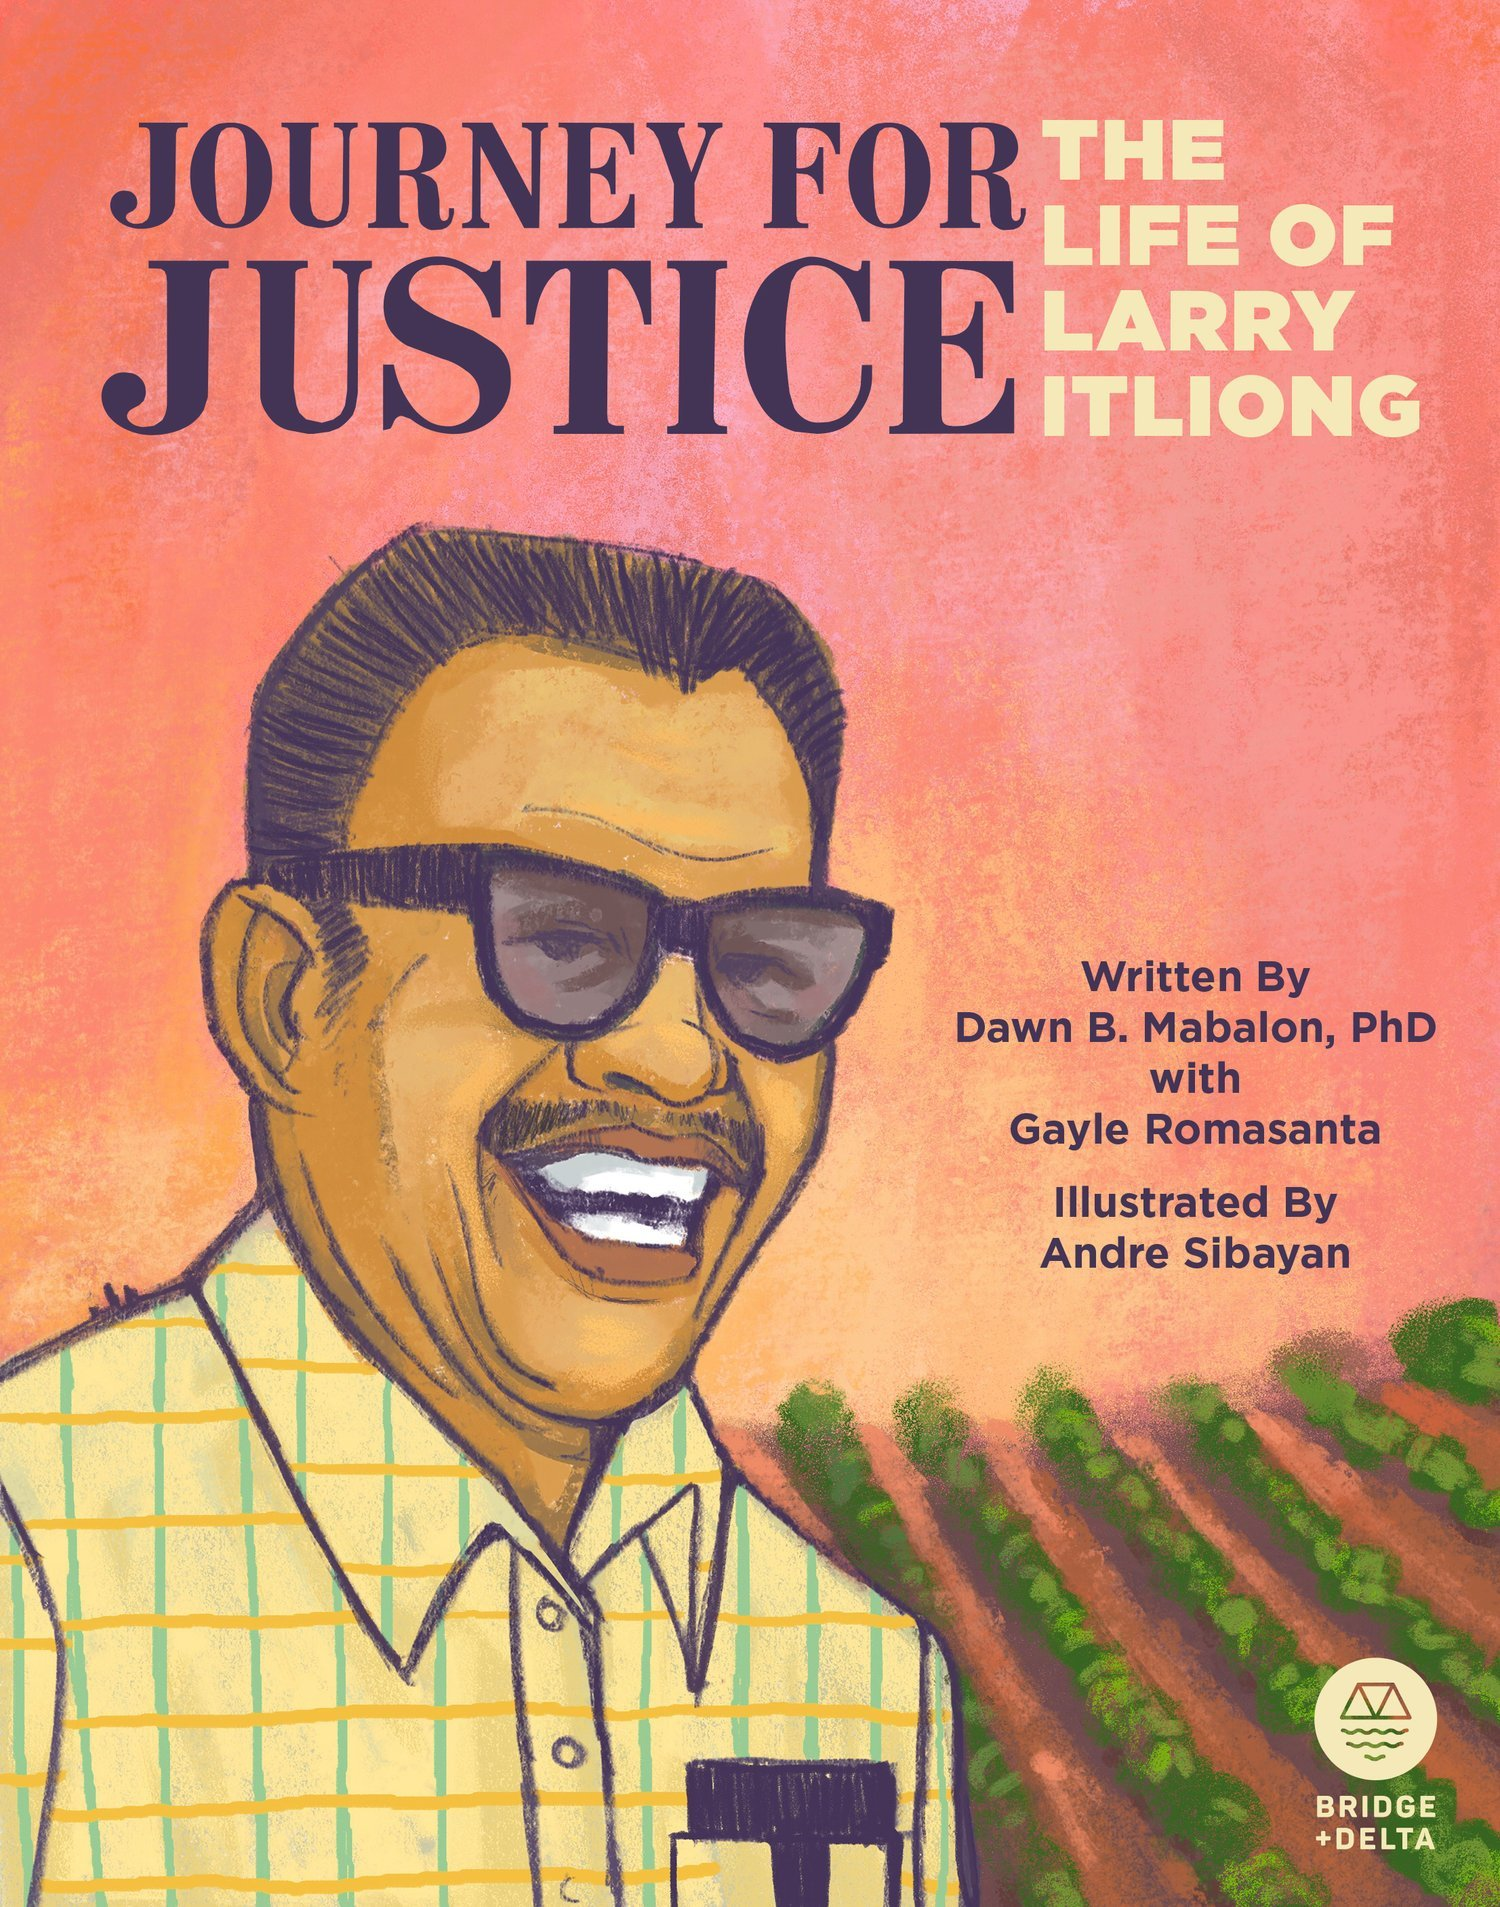 BookCover - Larry Itliong